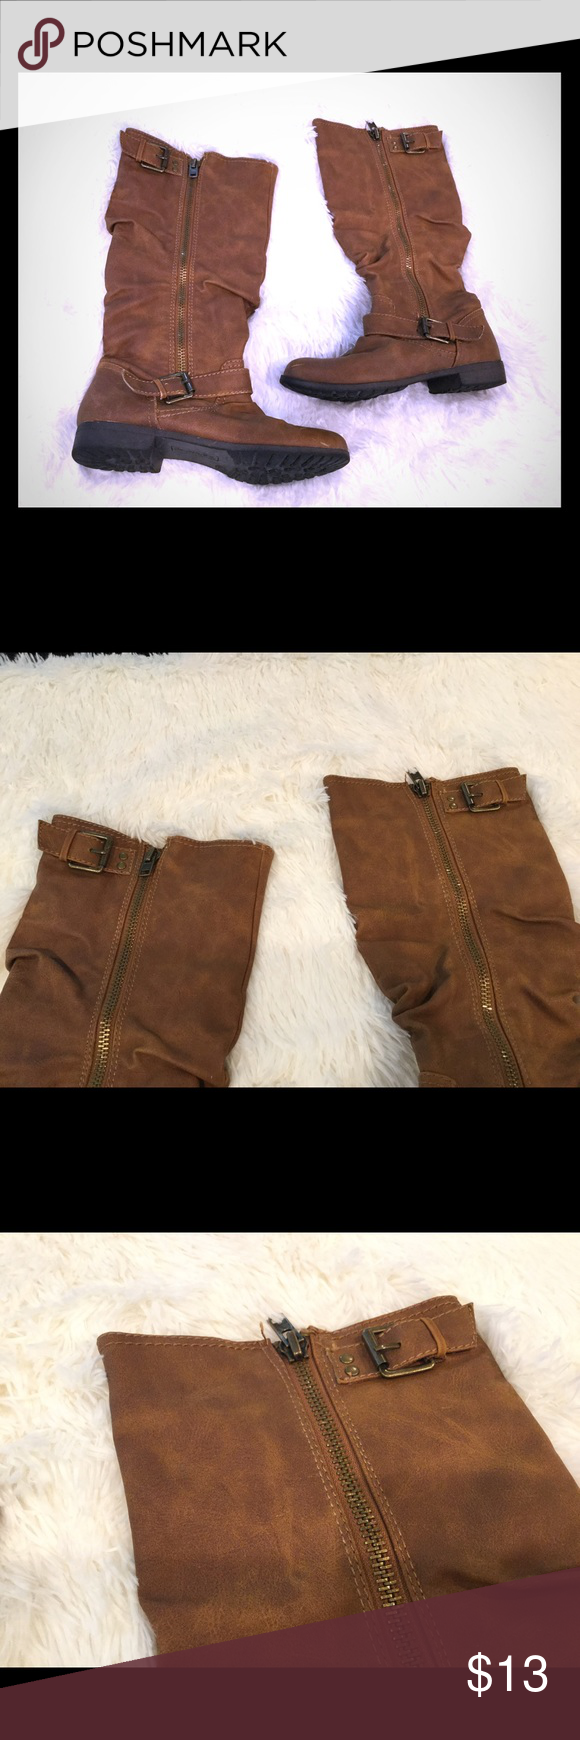 Material girl knee high camel boots size 7 BY material girl size 7, camel, tan buckle accent boot, zipper on outside where buckles are, unique! Worn twice. Good condition, please see pictures for details. Material Girl Shoes Over the Knee Boots